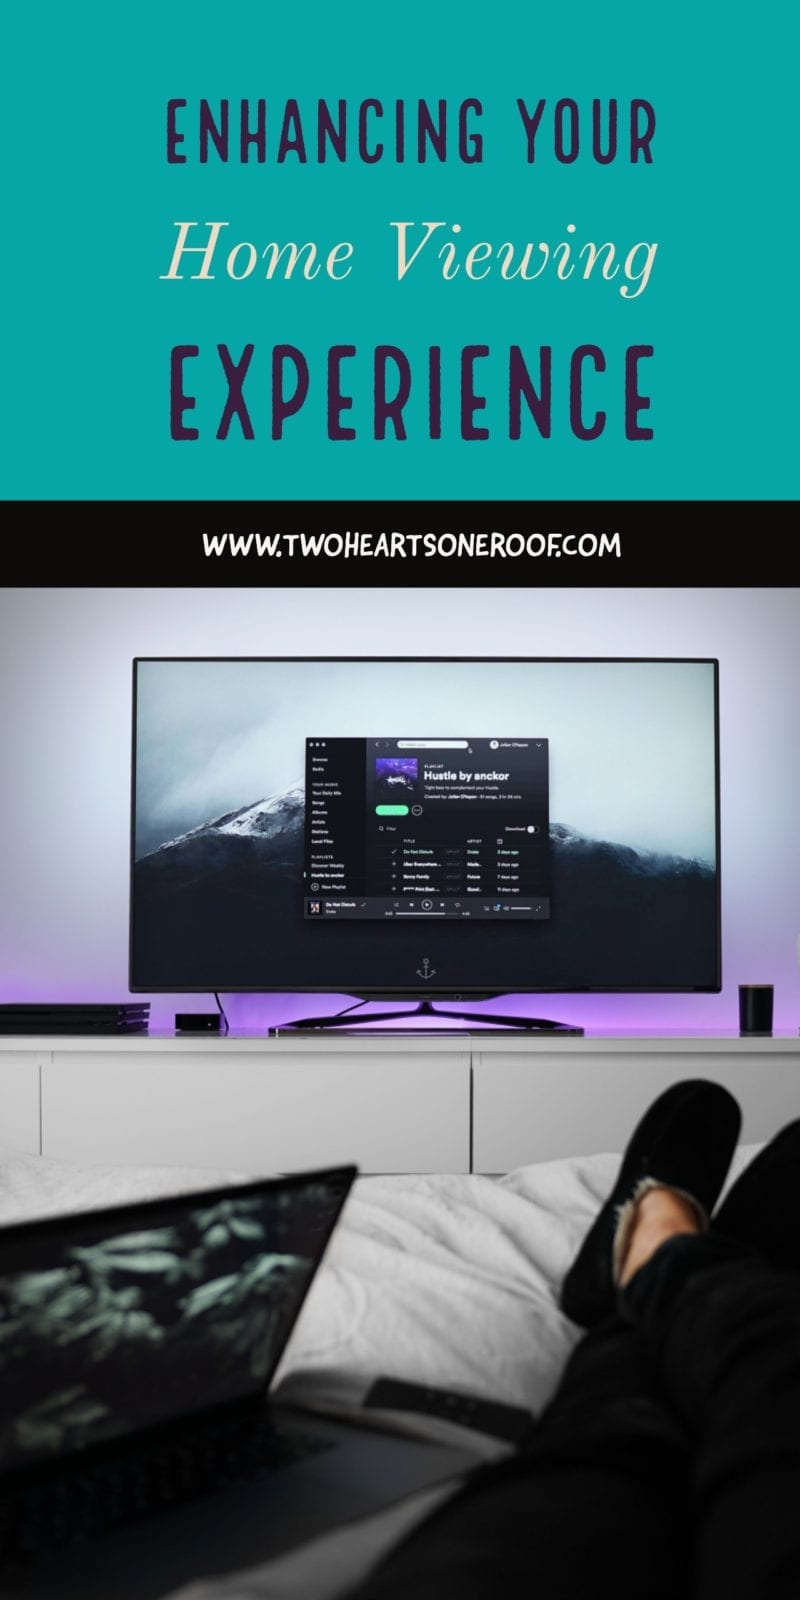 Enhancing Your Viewing Experience at Home